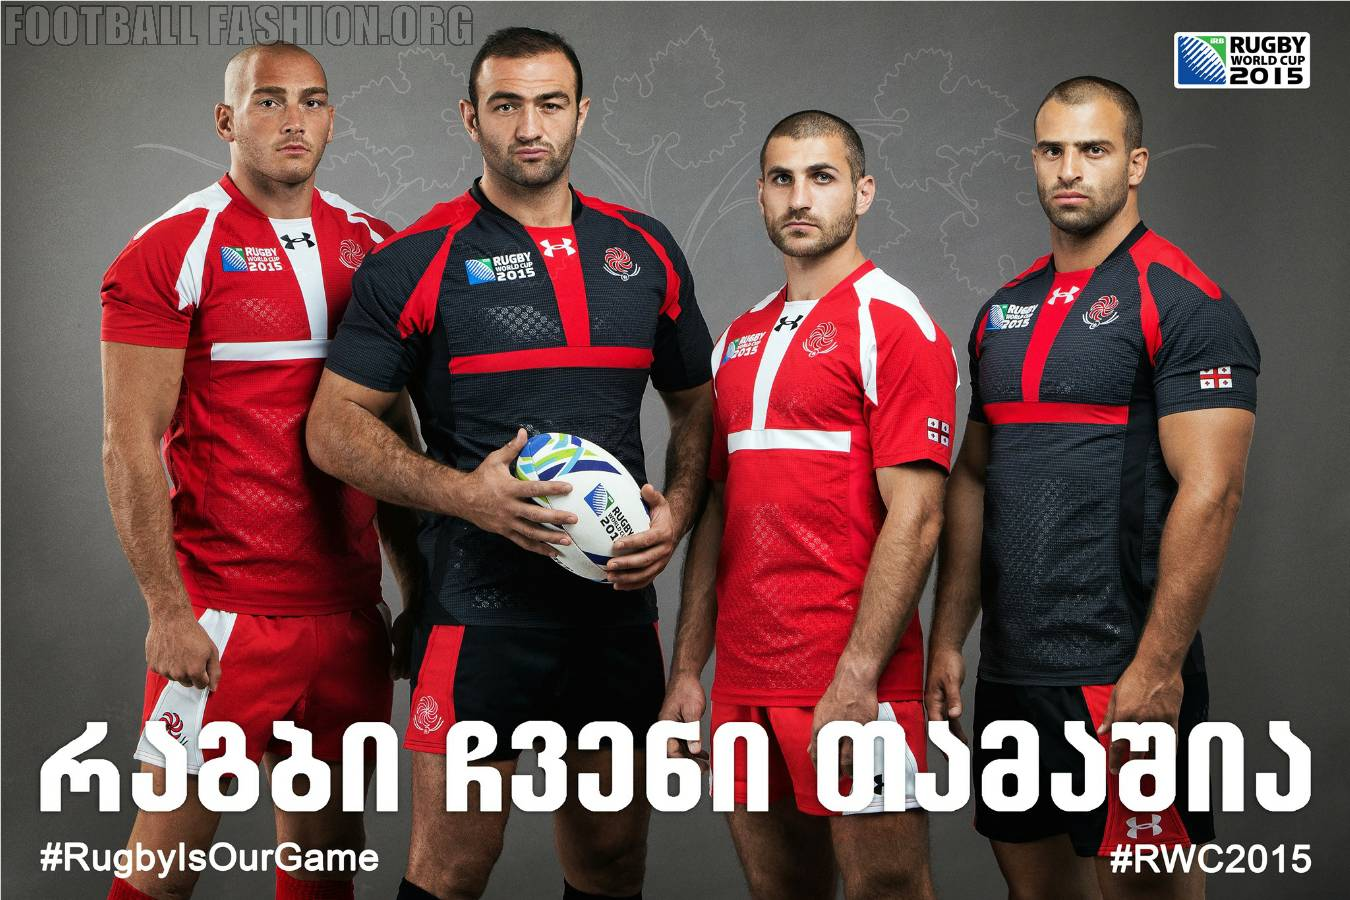 Georgia 2015 Rugby World Cup Under Armour Home and Away Kit, Jersey, Shirt